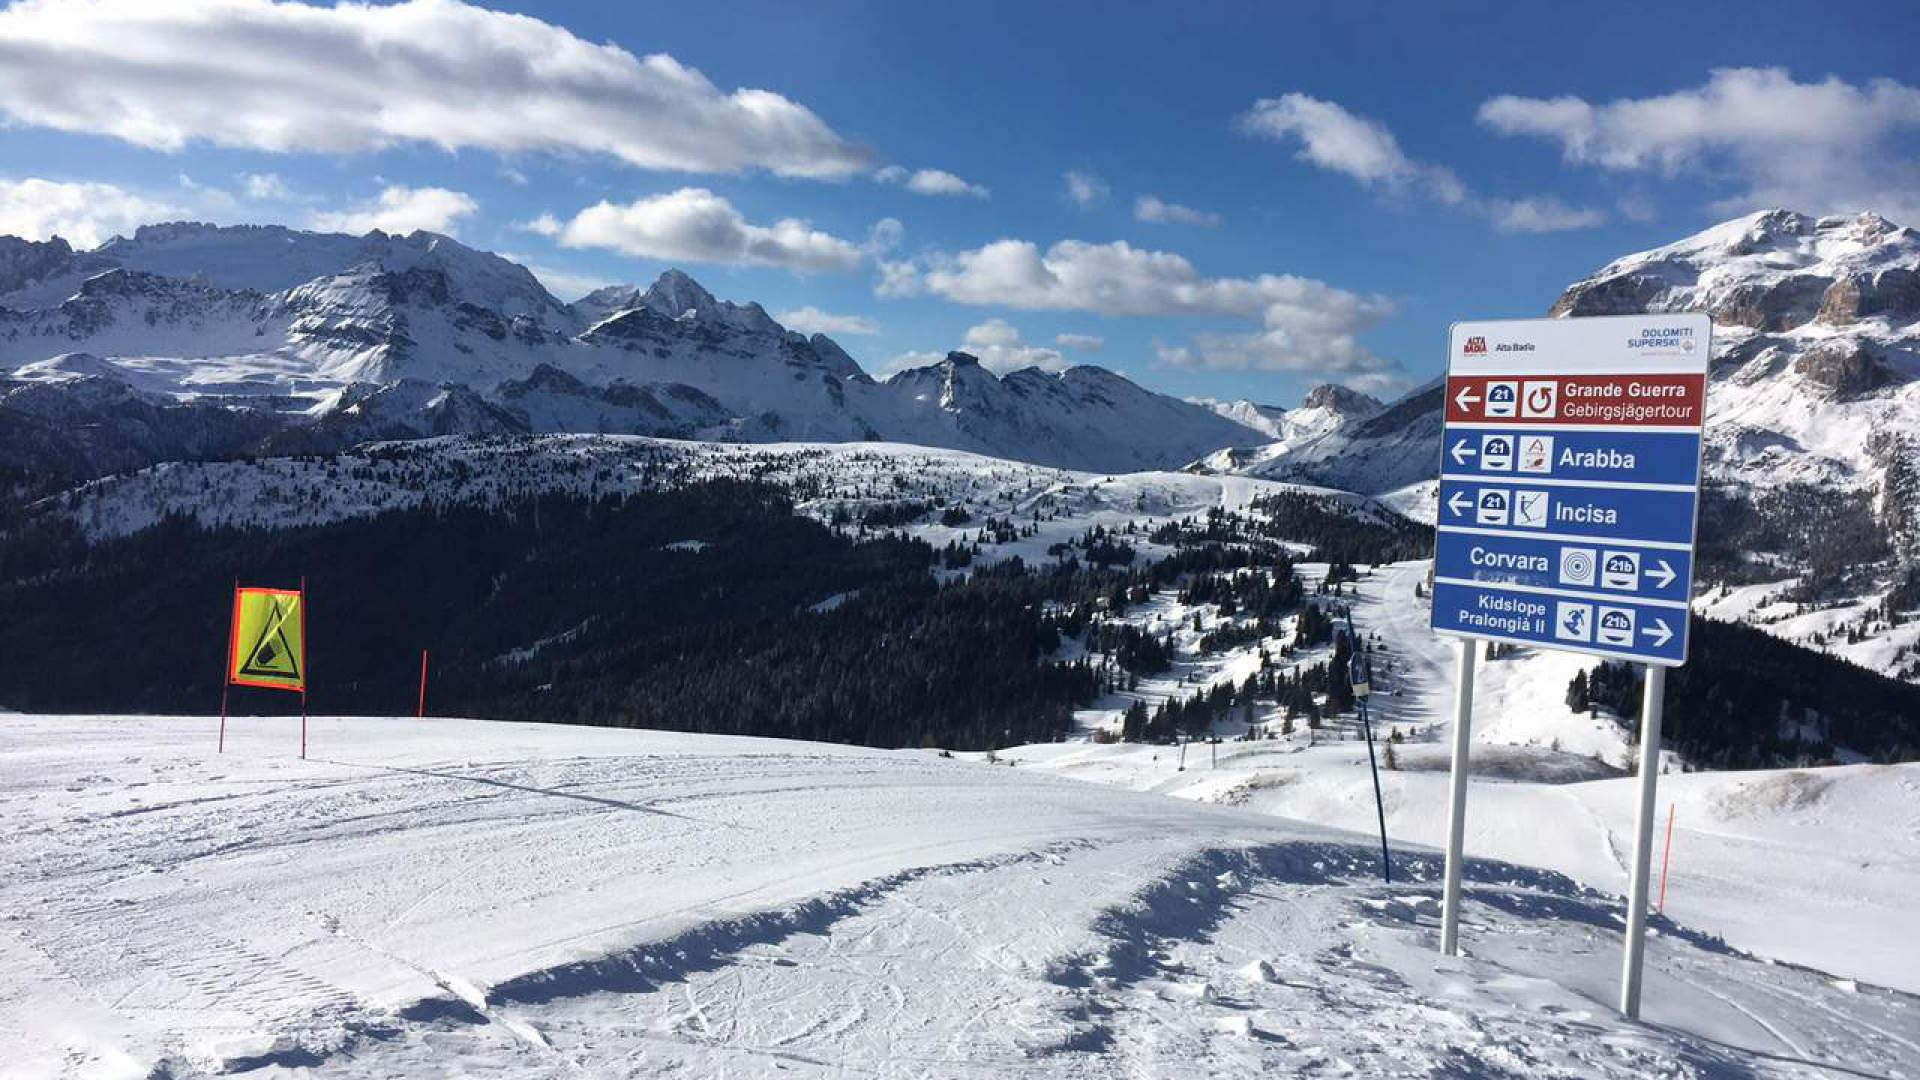 Dolomiti Superski, Kronplatz & Sella Ronda - Hotel Post